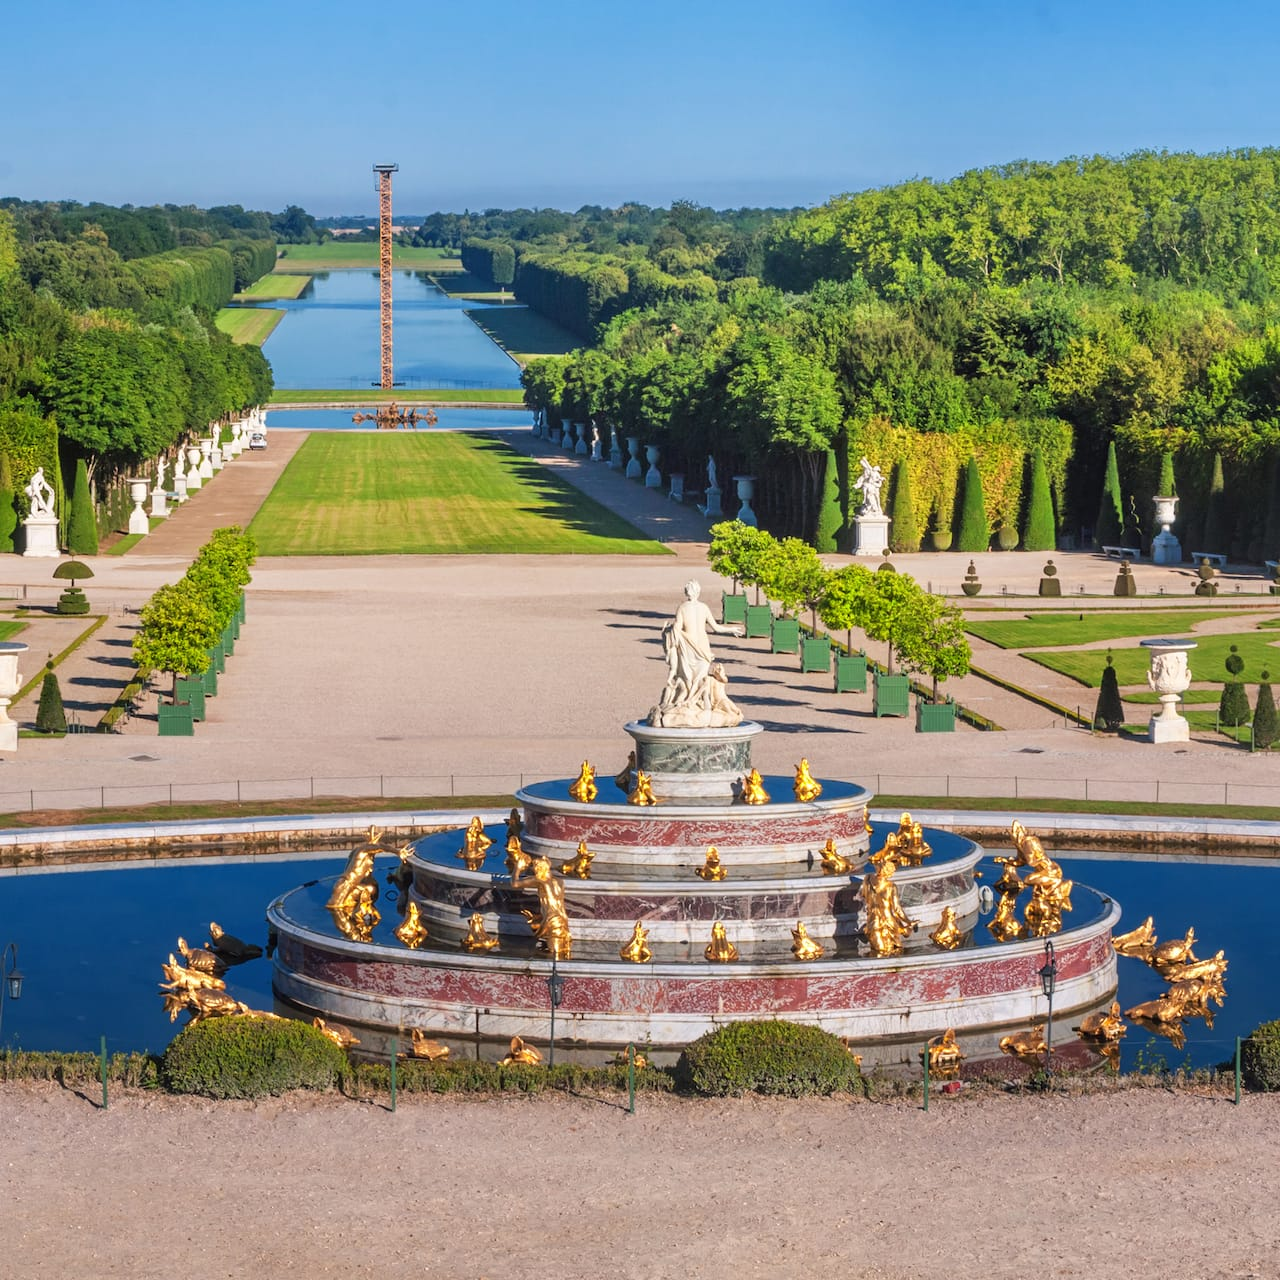 Latona Fountain overlooking an expanse of lawn in the gardens of Versailles